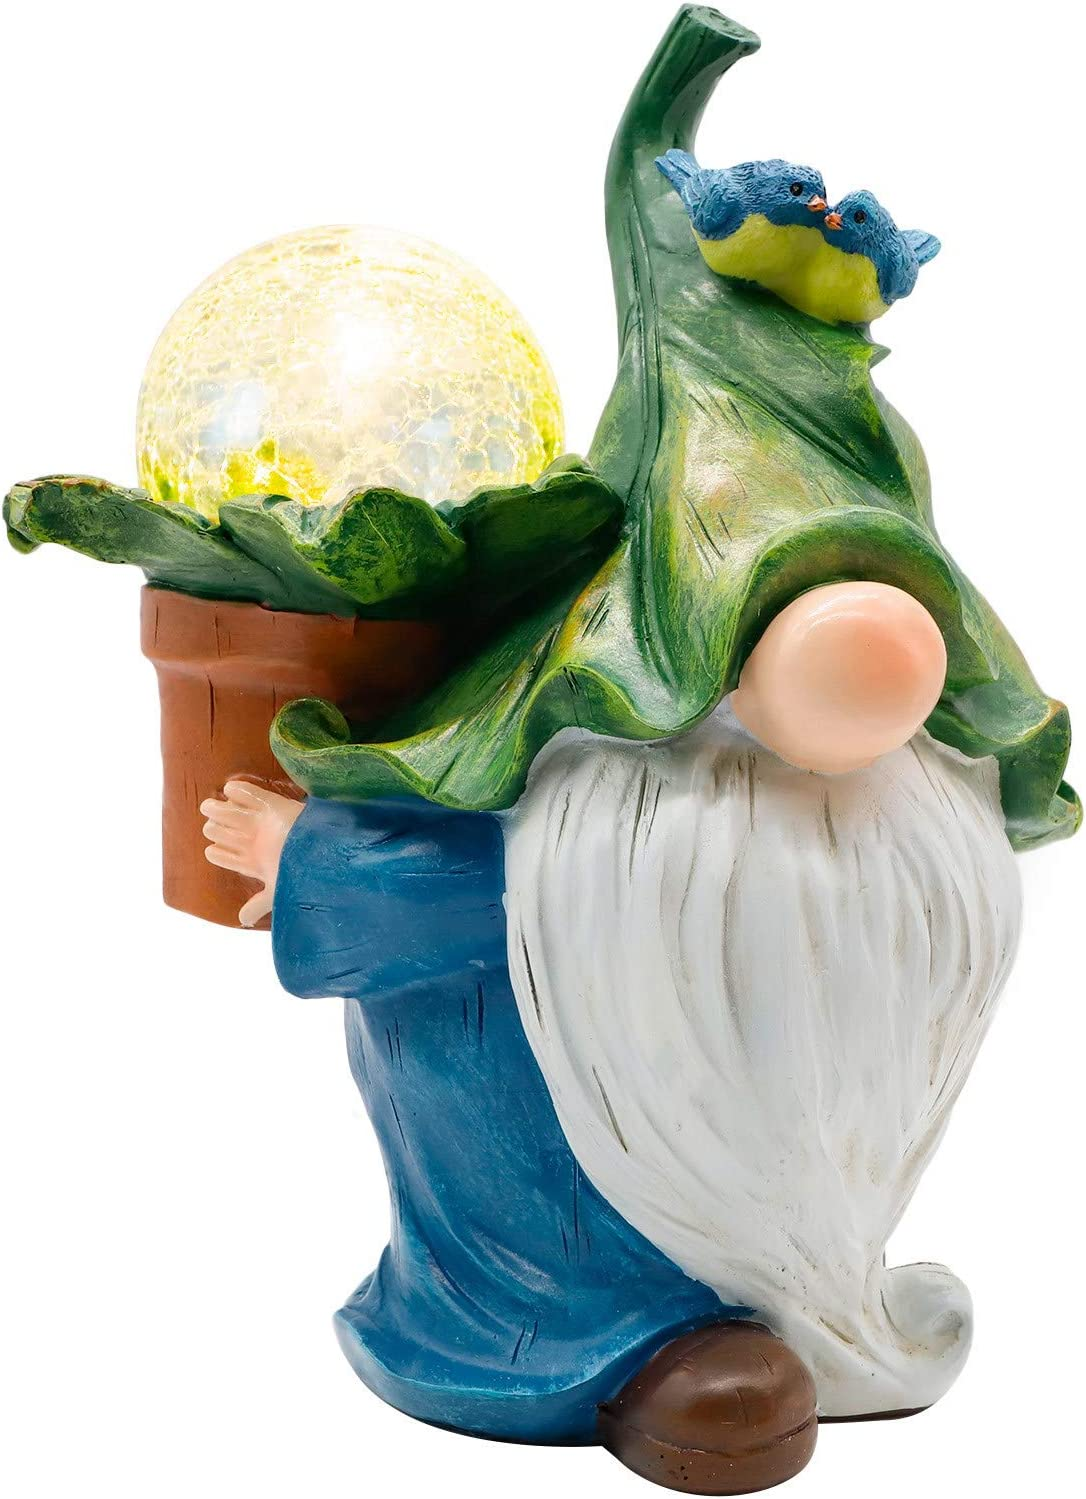 Garden Gnome Statue with Solar LED Lights, Resin Gnome Figurine Carrying Magic Orb, Outdoor Gnomes Garden Decorations for Patio Yard Lawn Porch, Ornament Gift